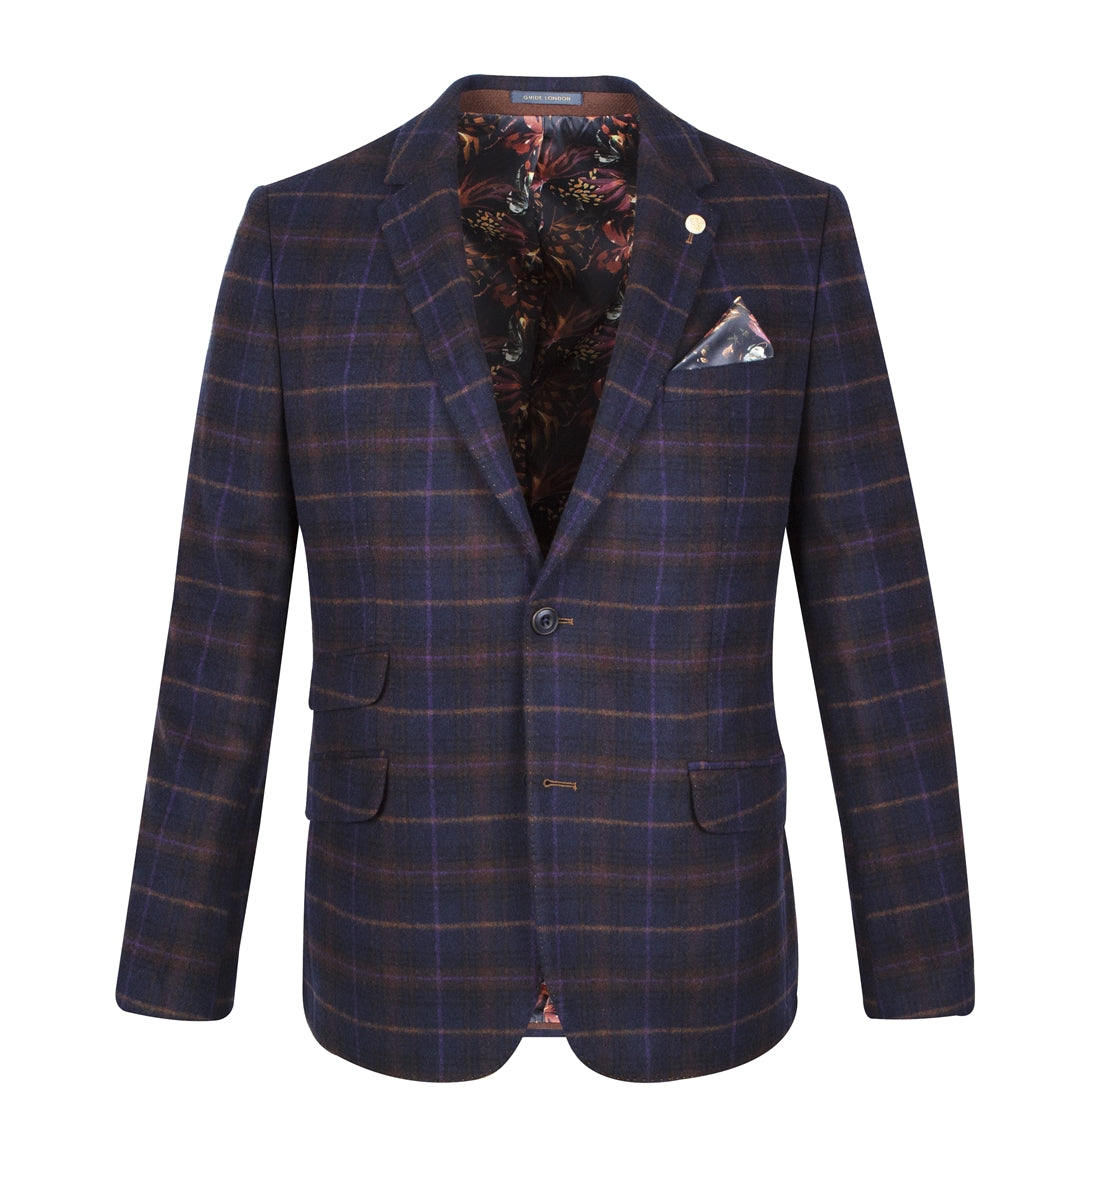 Navy With Orange & Purple Plaid Check Suit Jacket